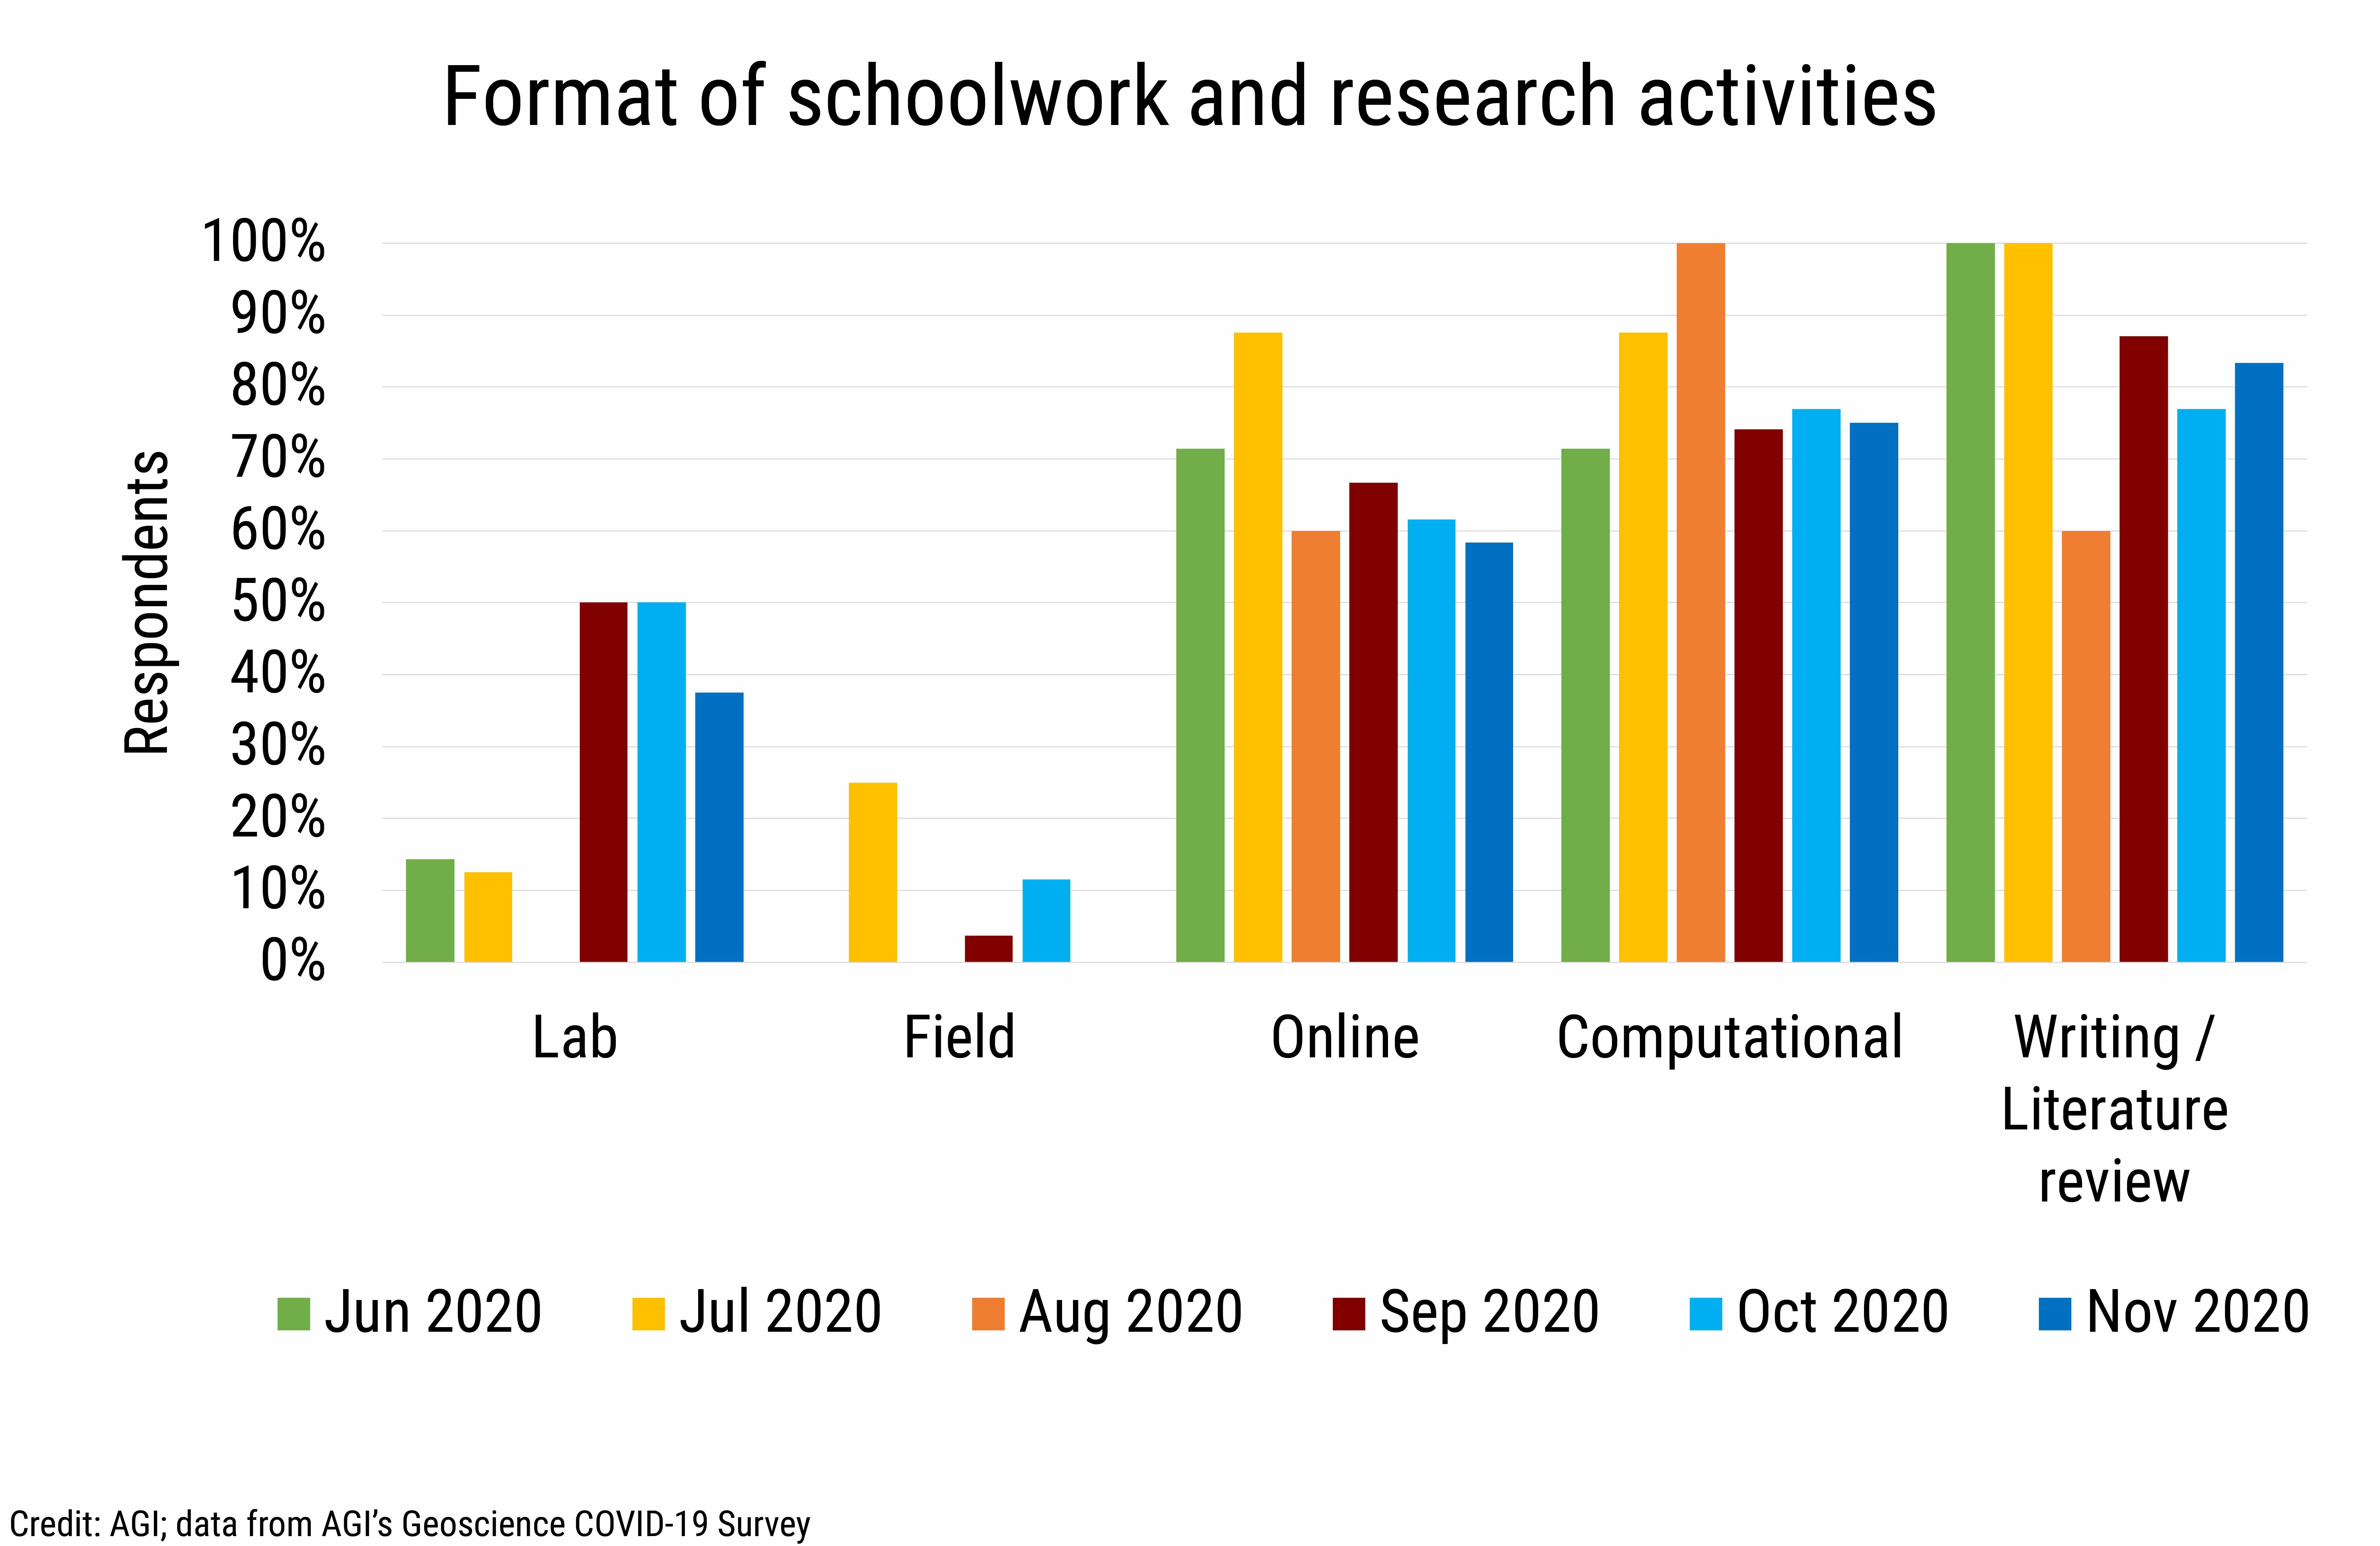 DB_2020-032 chart 06: Format of schoolwork and research activities (Credit: AGI; data from AGI's Geoscience COVID-19 Survey)